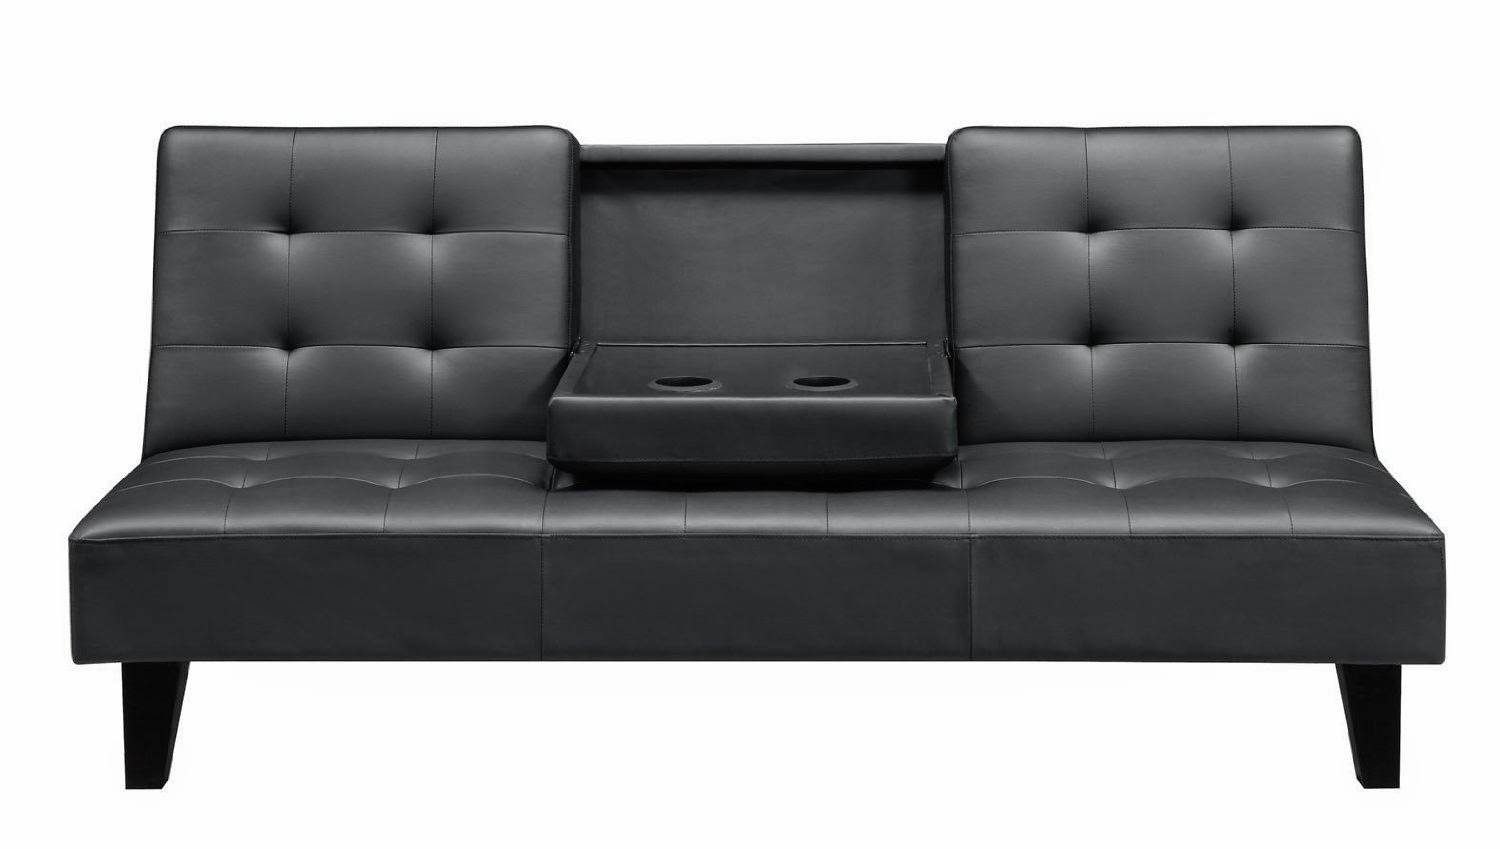 Convertible Sofa with Black Leather Convertible Sofas (Image 8 of 15)